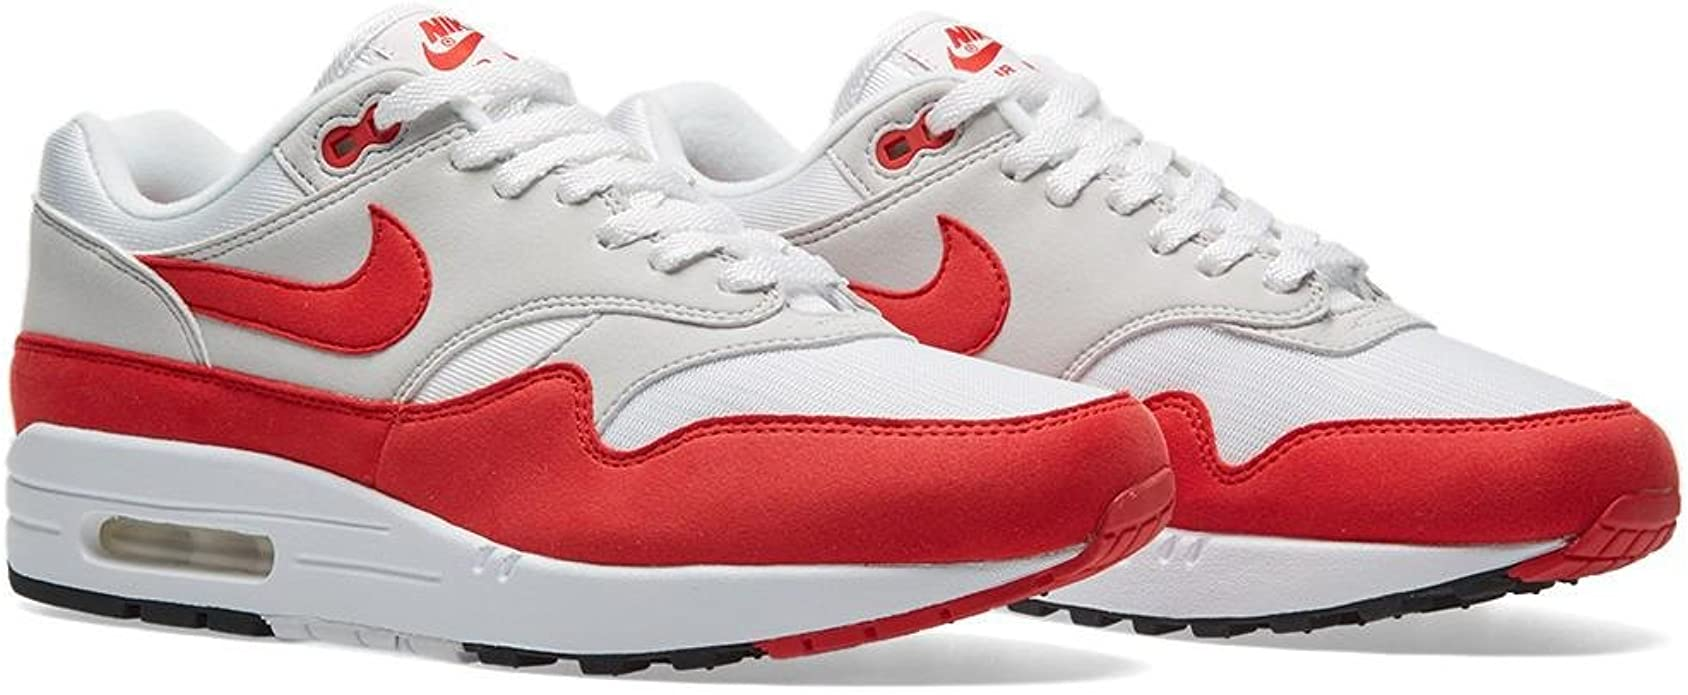 air max 1 anniversary red release date